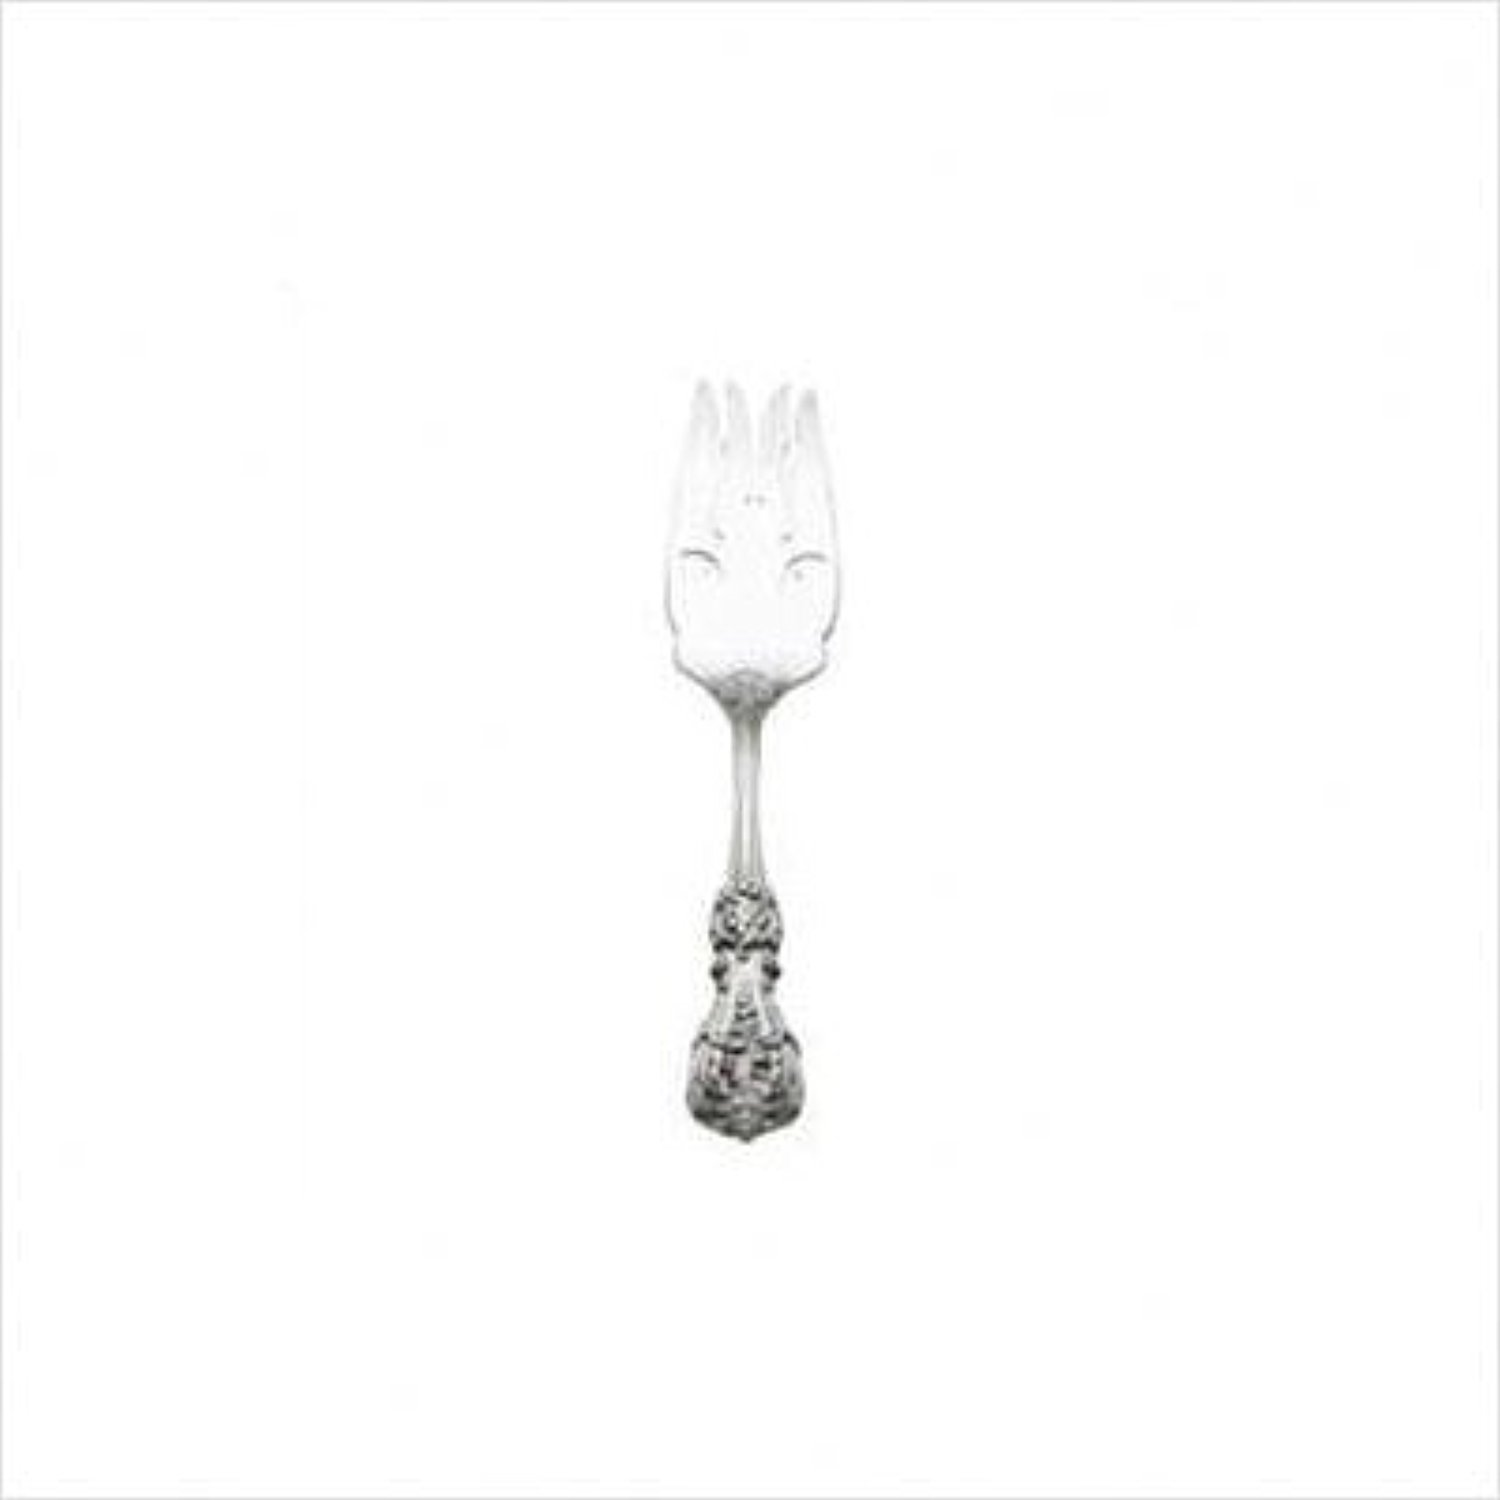 Reed & Barton Francis I Sterling Cold Meat Fork